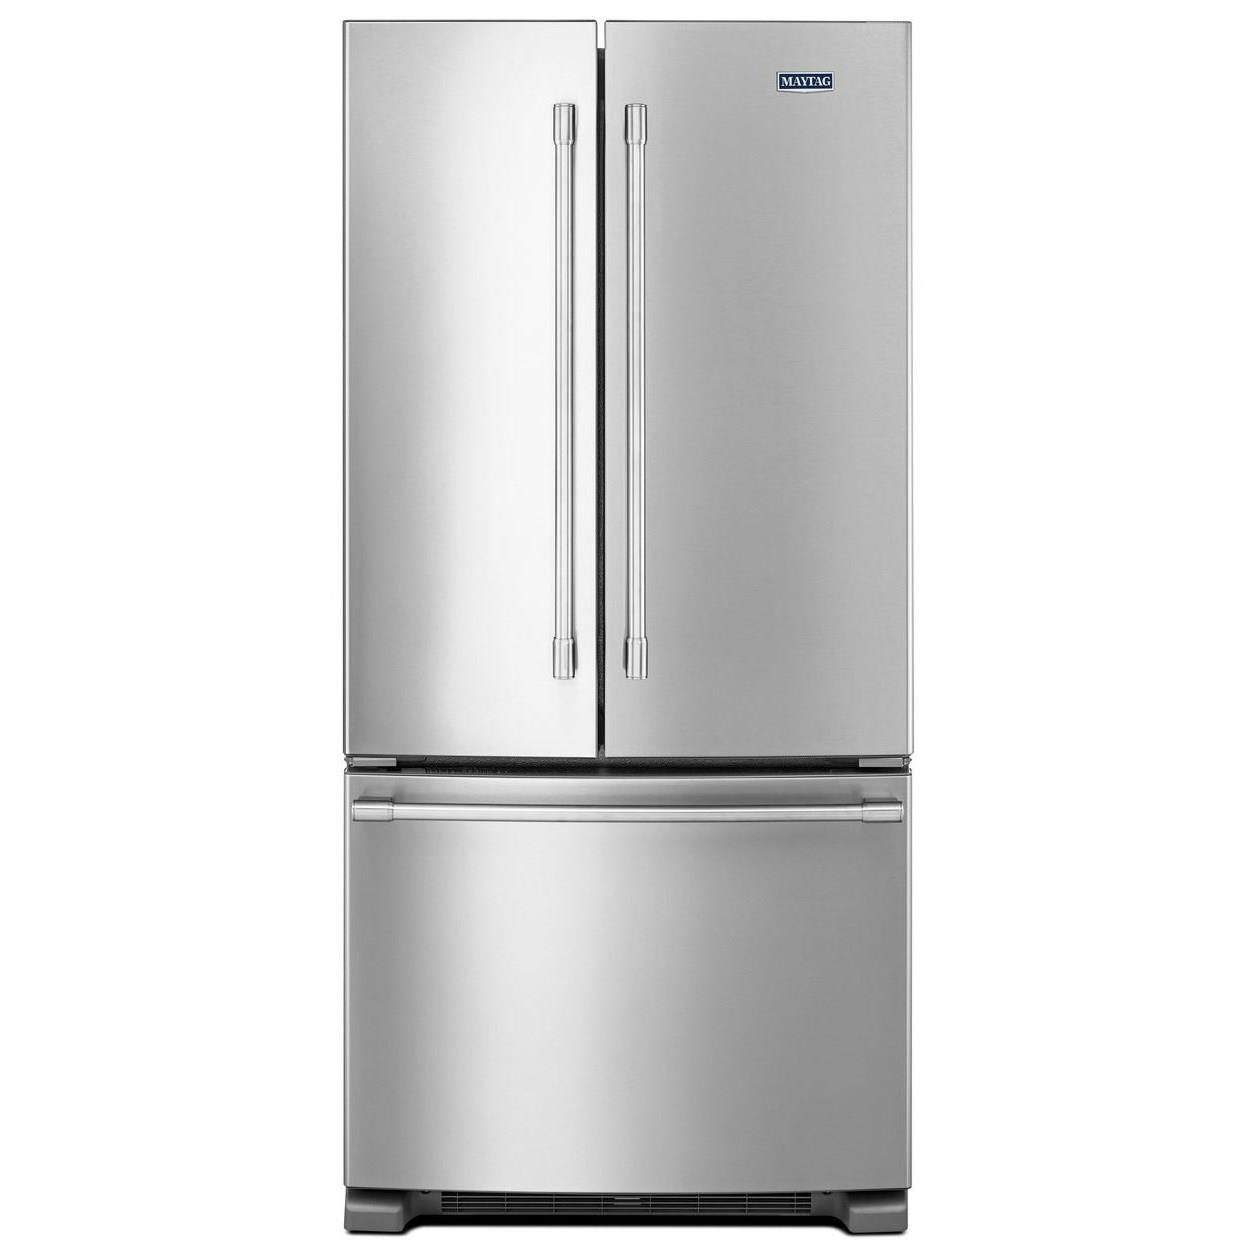 Maytag Mff2258fez33 Inch Wide French Door Refrigerator 22 Cu Ft